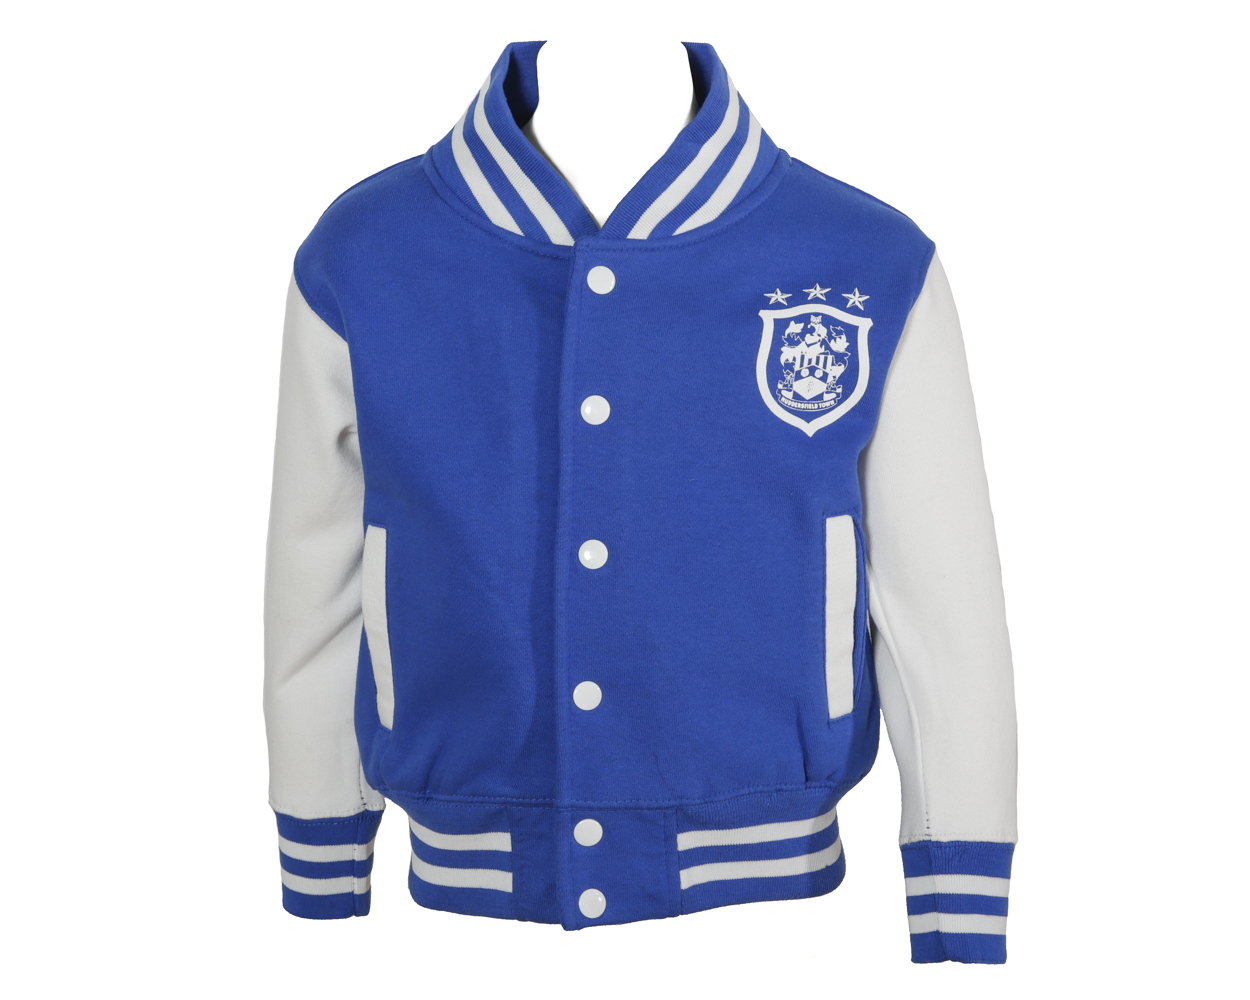 Childrens Blue College Jacket